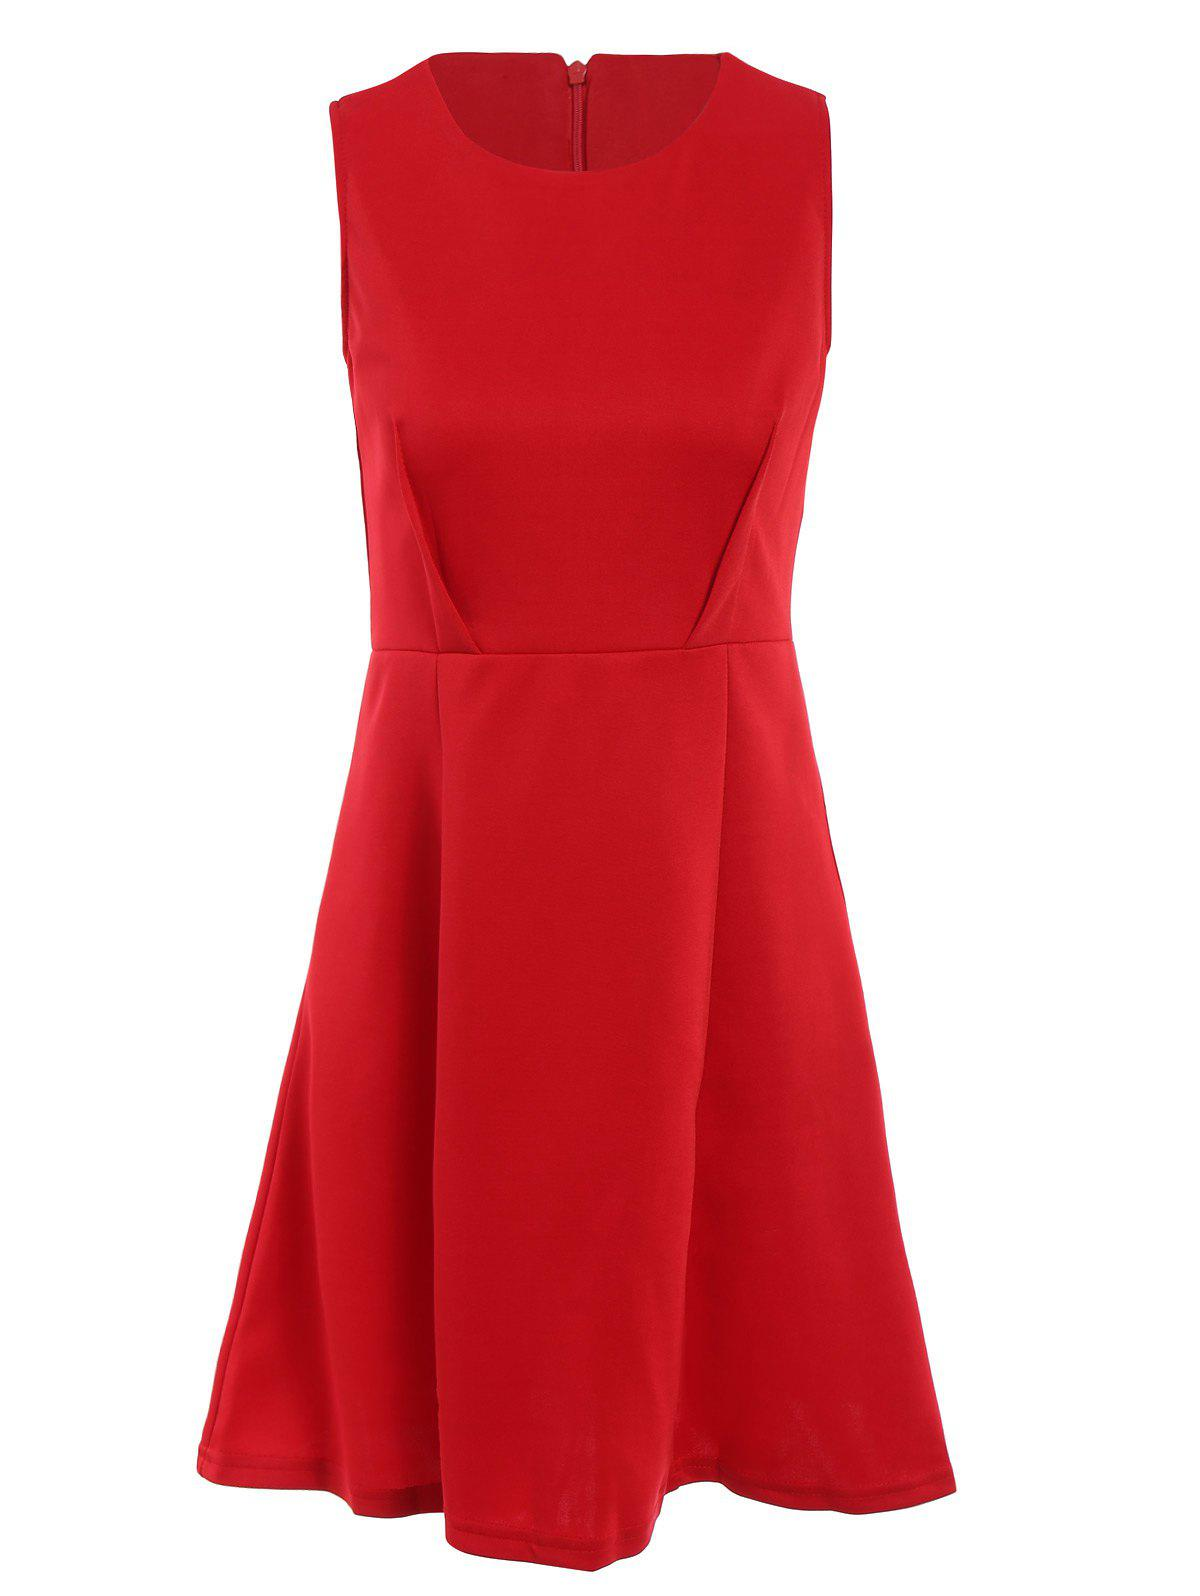 Christmas Women's Scoop Neck Sleeveless Solid Color A-Line Dress - RED S